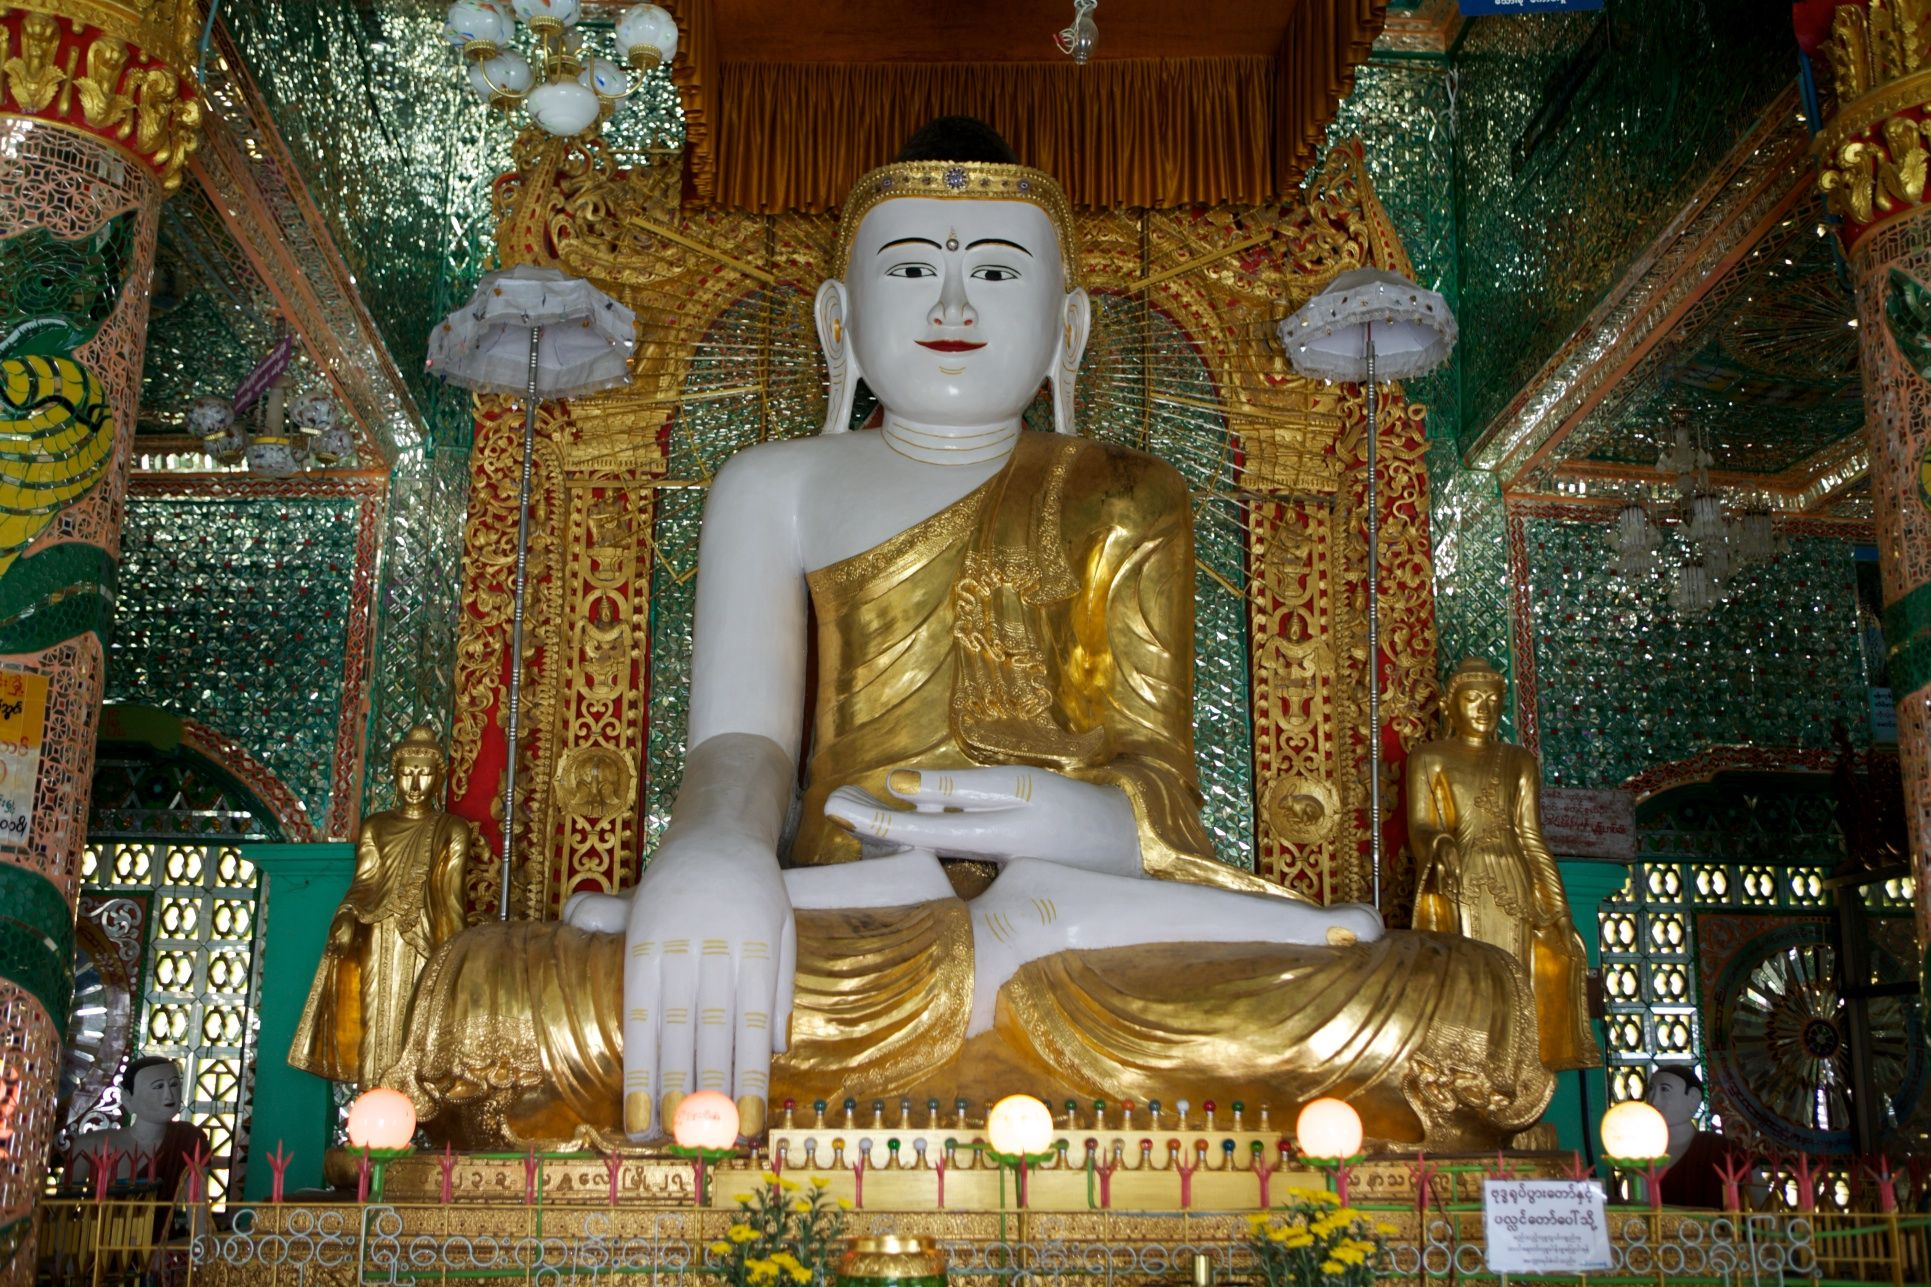 burna buddhist personals Myanmar travel agent, myanmar, myanmar travel, travel myanmar, myanmar tour operator, we can provide you to travel safely and do travel arrangements such as air ticket, hotel, guide, car rental and othersour goal is to show you more of myanmar nature and culture insight that you could get in the similar line of trip, less of cost and meet.